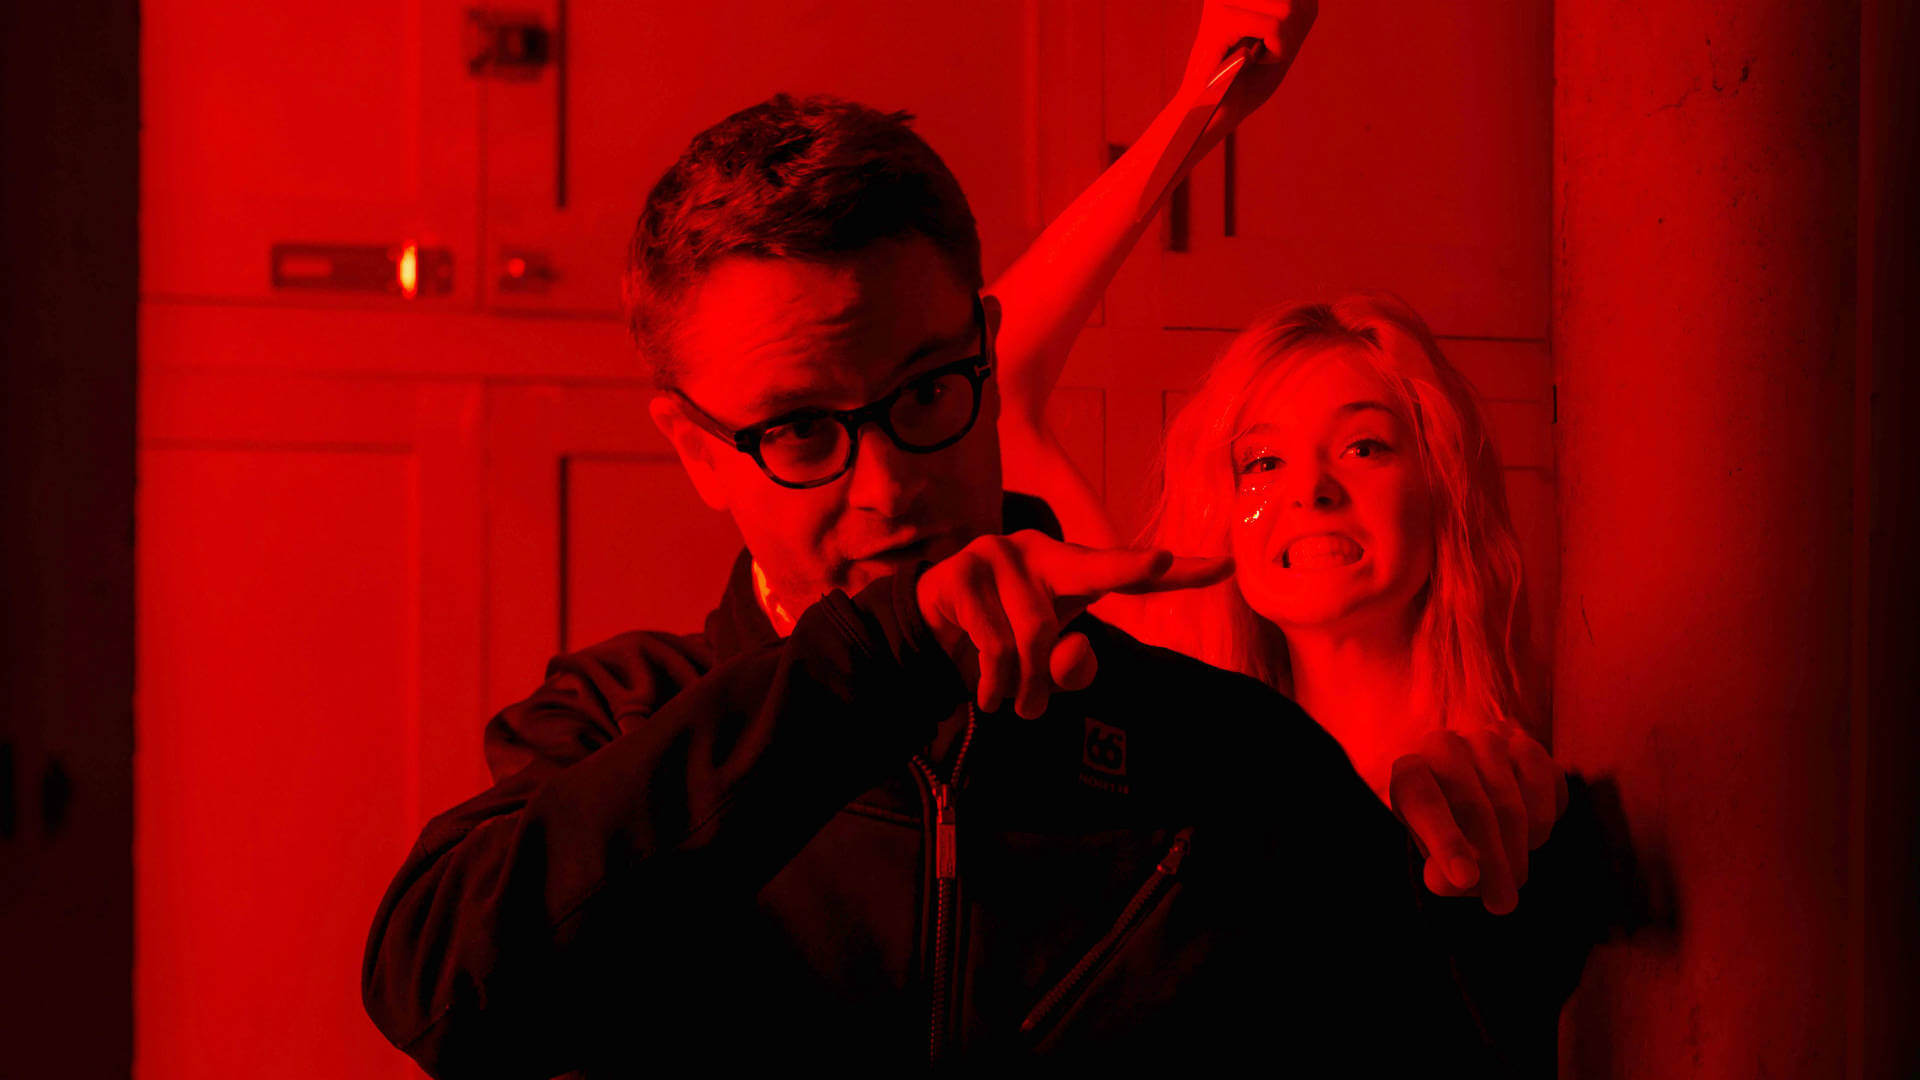 Nicolas Winding Refn sur le tournage de The Neon Demon - Crédit 2016 Space Rocket - Gaumont - Wild Bunch - Gunther Campine